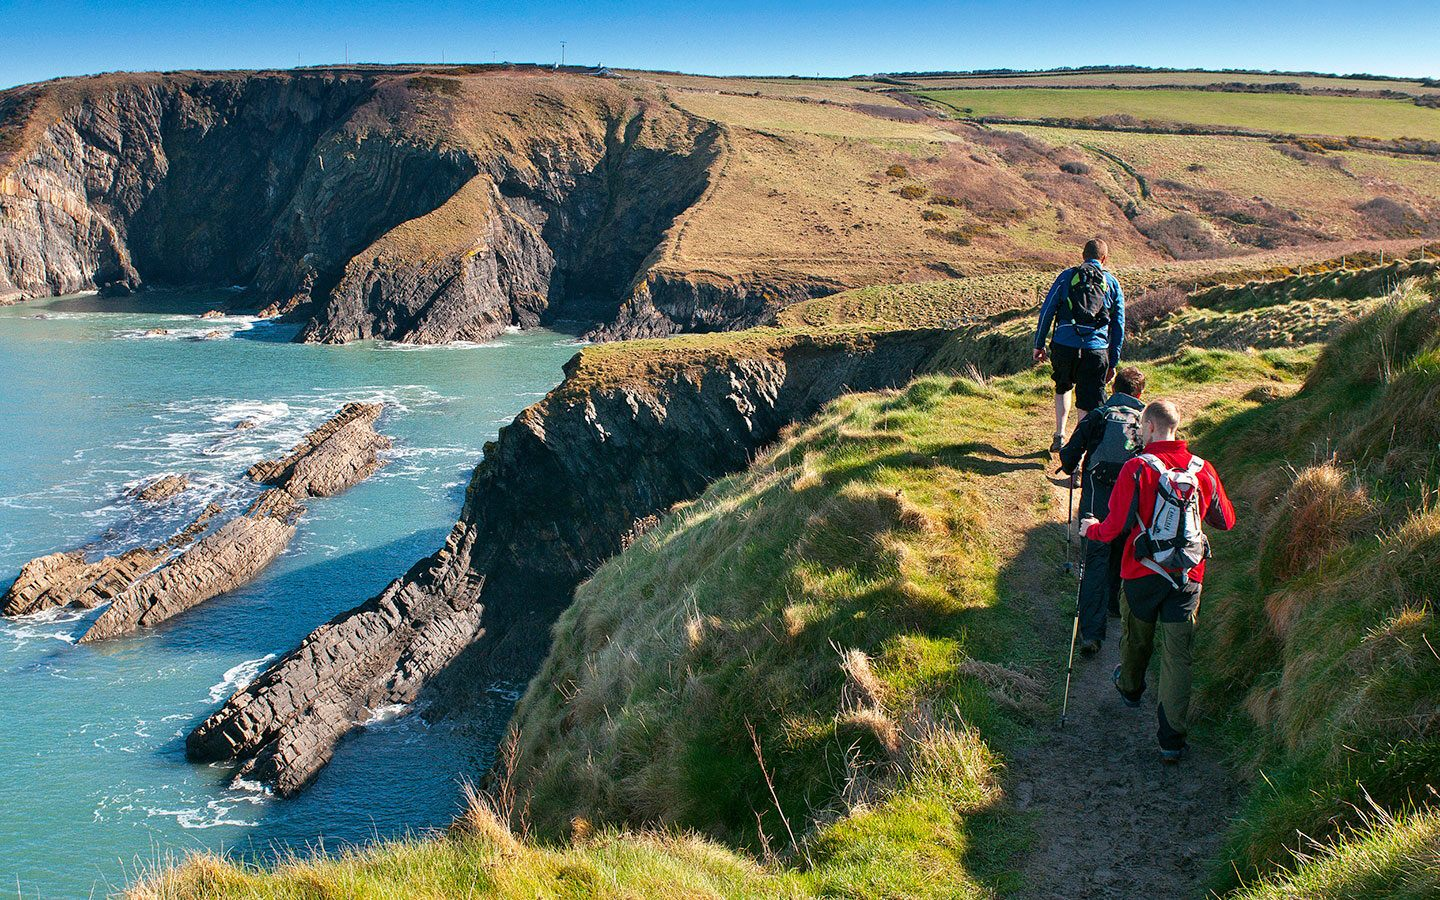 Pilgrimage Walks in West Wales along the Pembrokeshire Coast Path